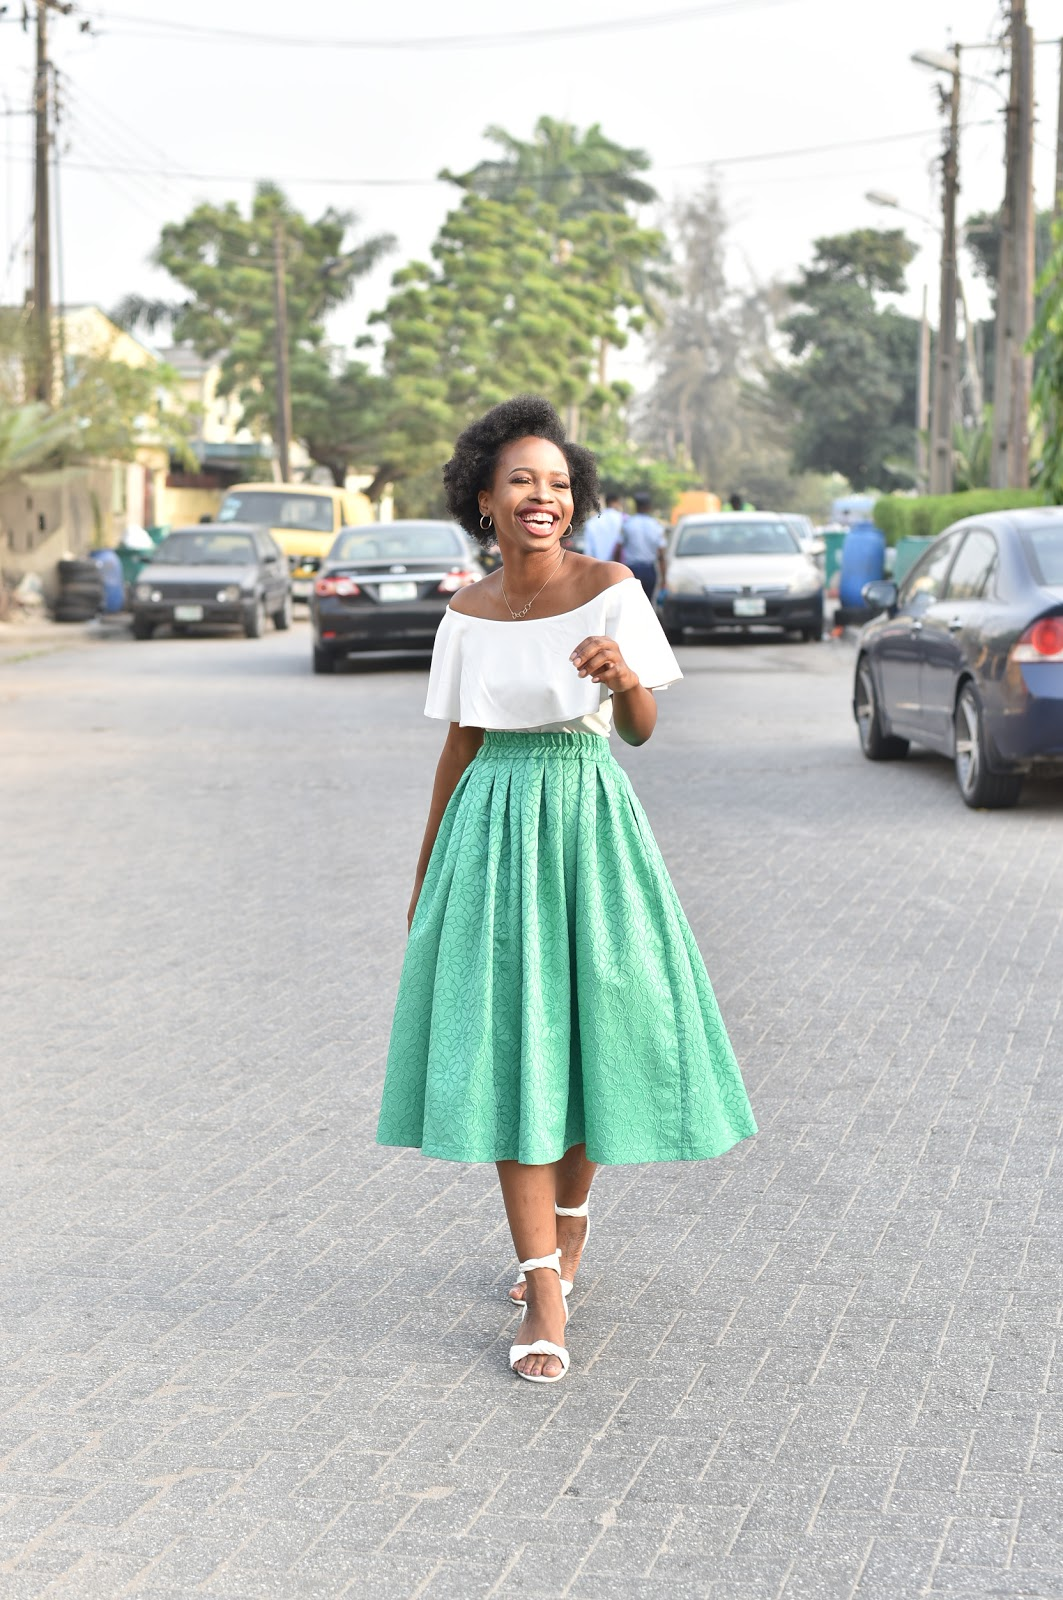 Green Midi Skirt x White Off Shoulder Top | Tuke's Quest